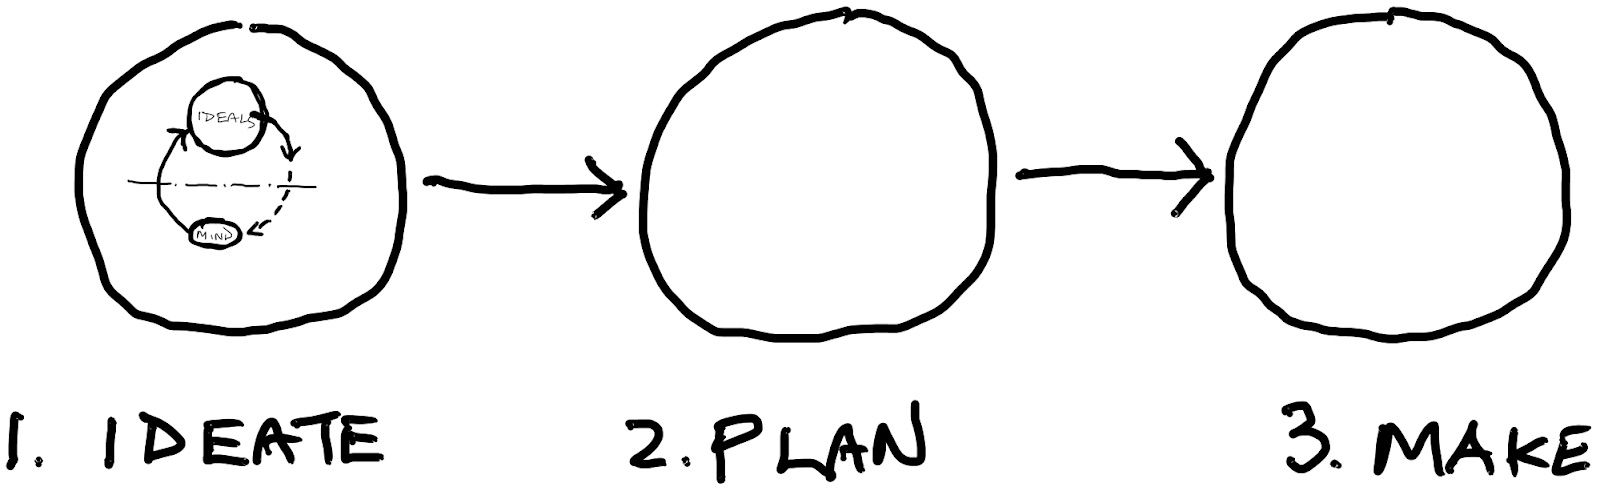 Ideate Plan Make Sequence